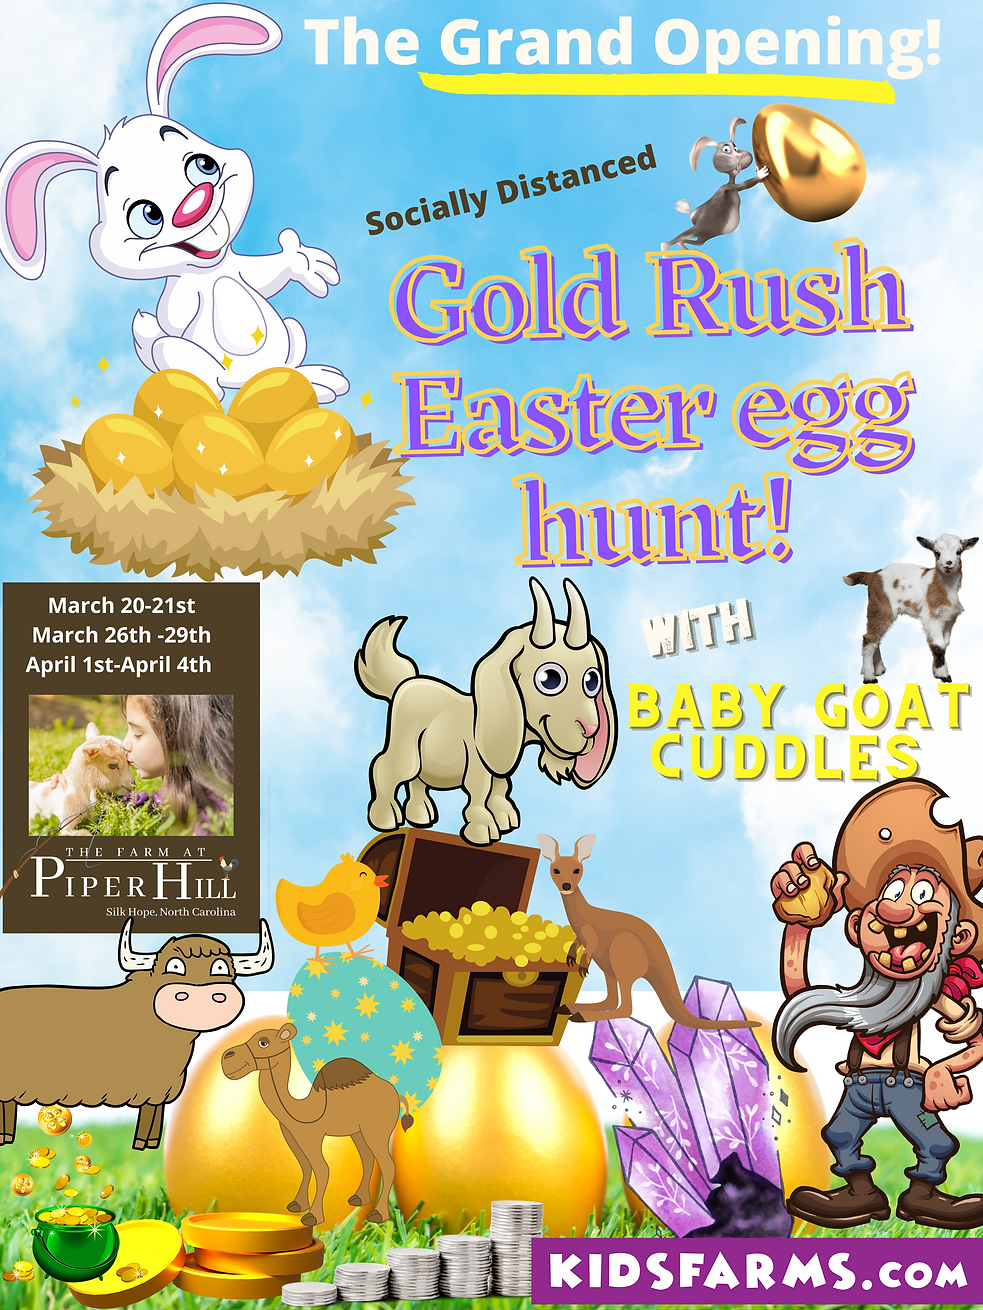 Easter egg hunt at Piper Hill.png